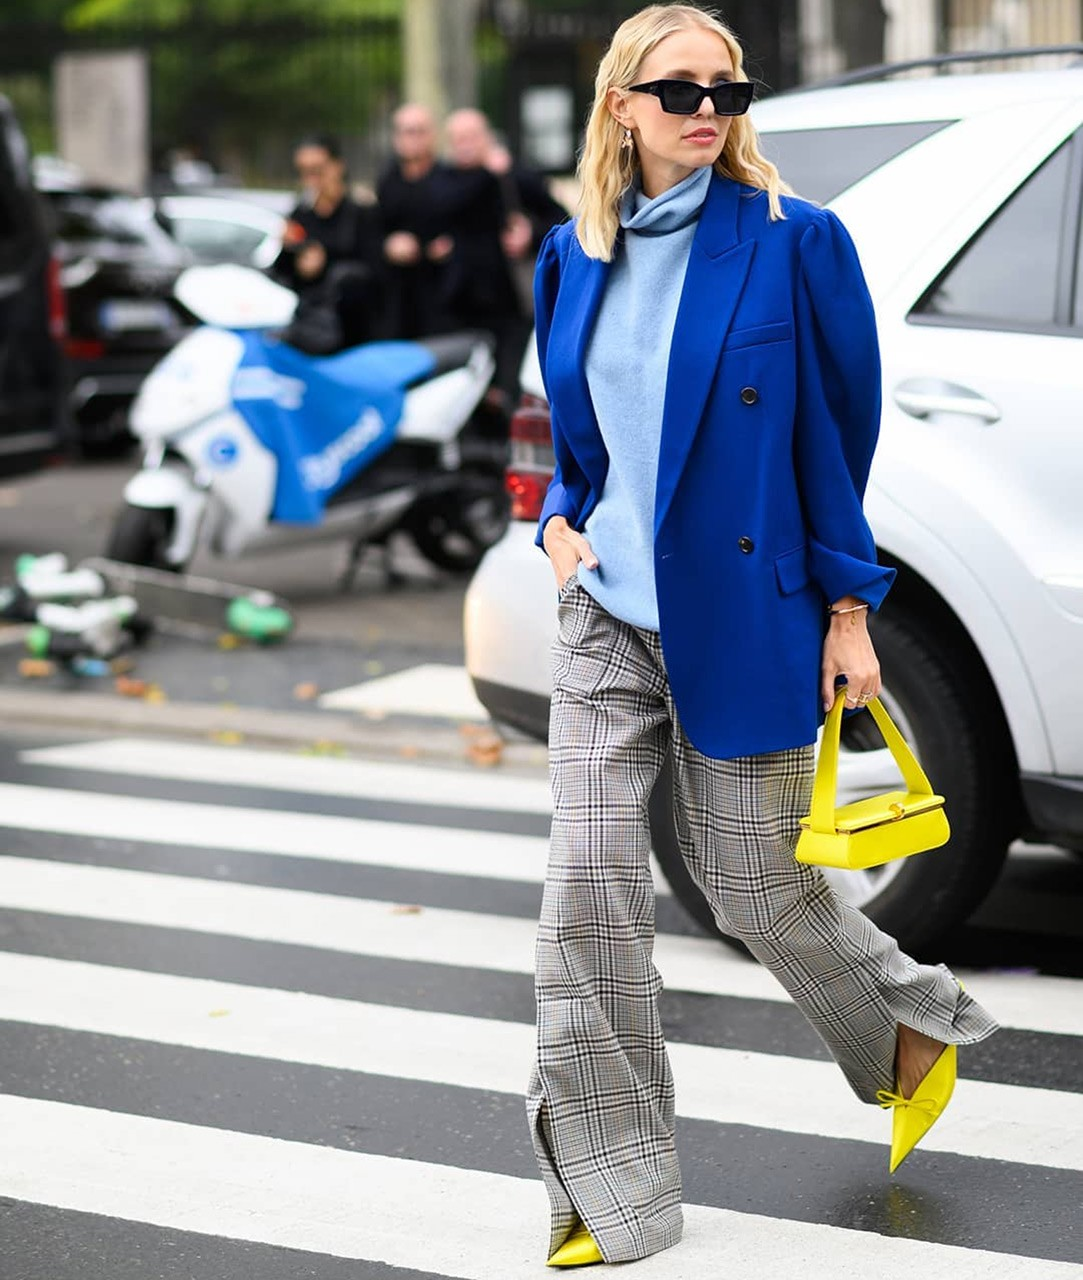 how-to-wear-bright-colors-in-fall-3.jpg